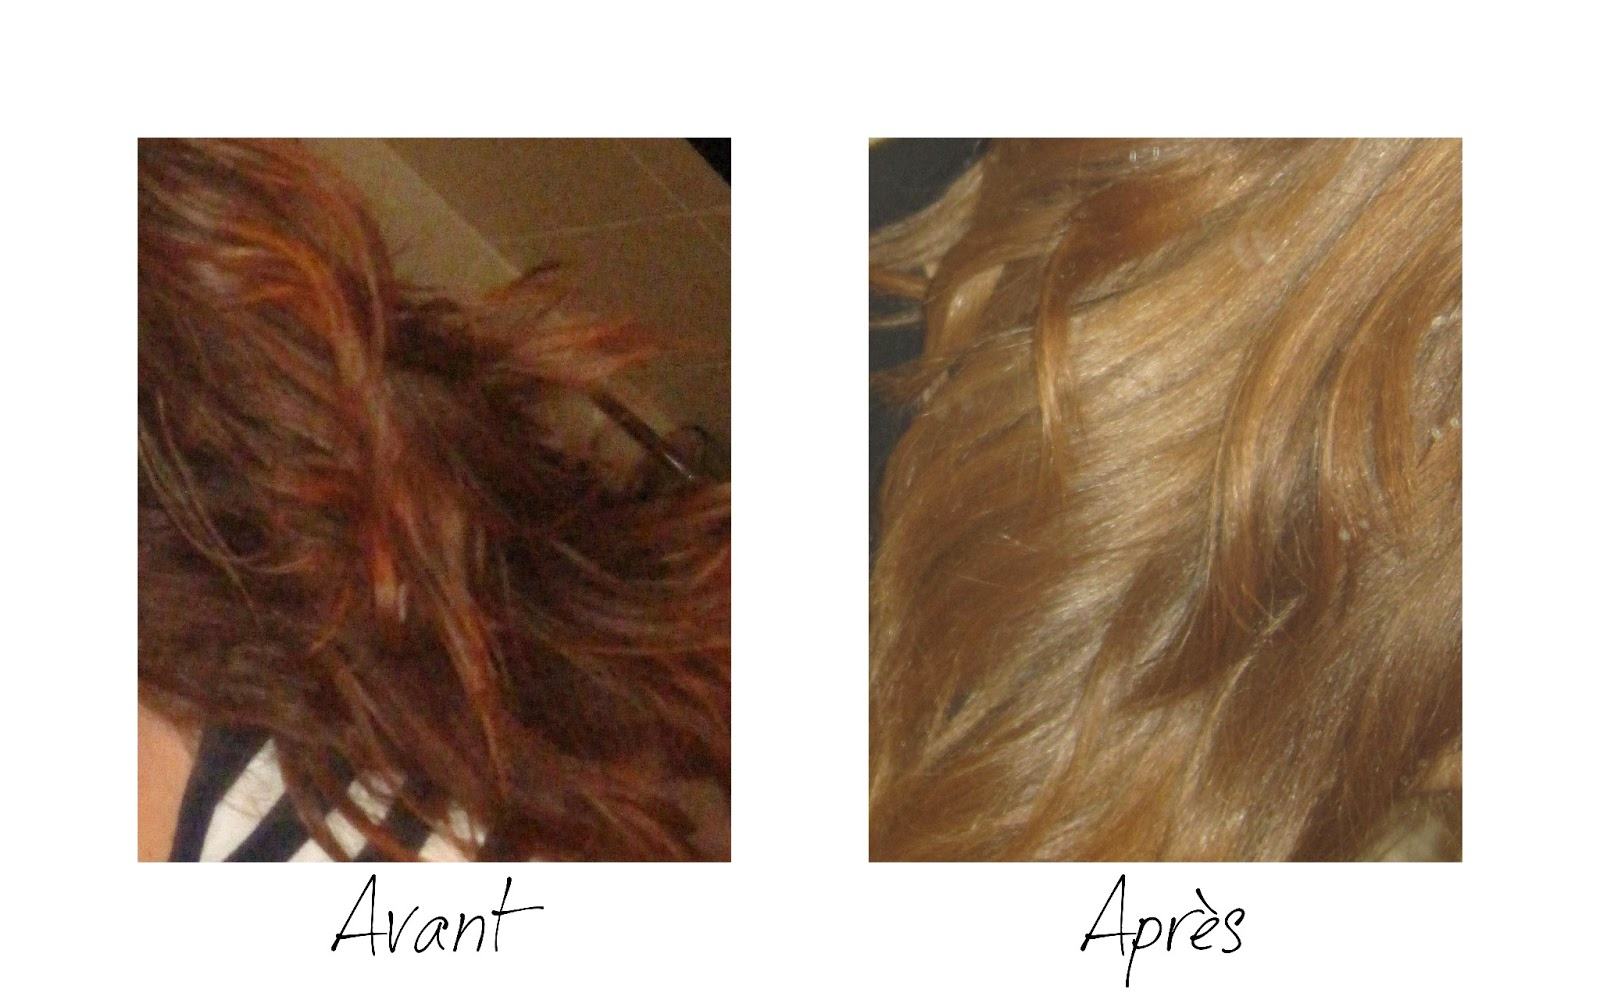 nedjmaonline: mon blond virent au roux ? la solution: neutraliser